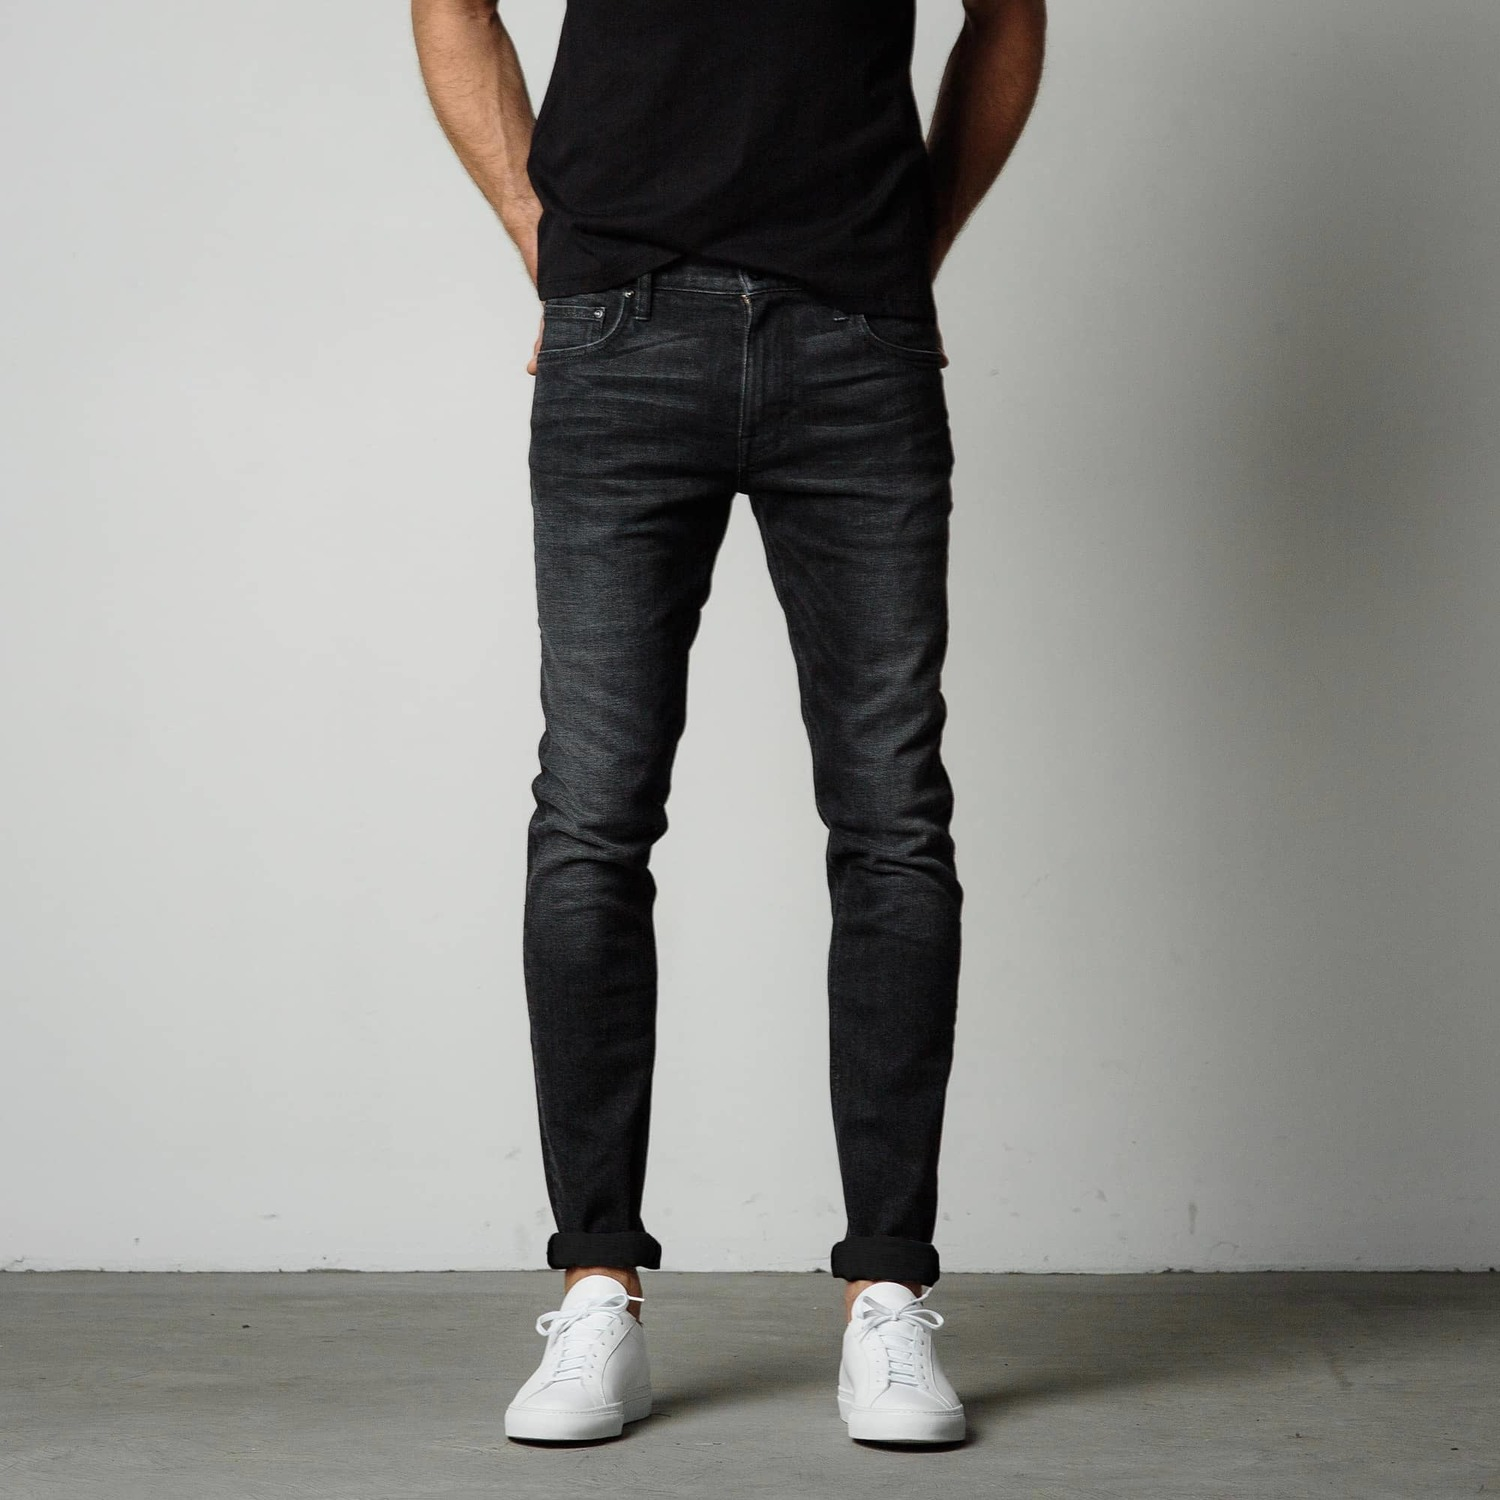 Mens Skinny Jeans In Faded Black $85